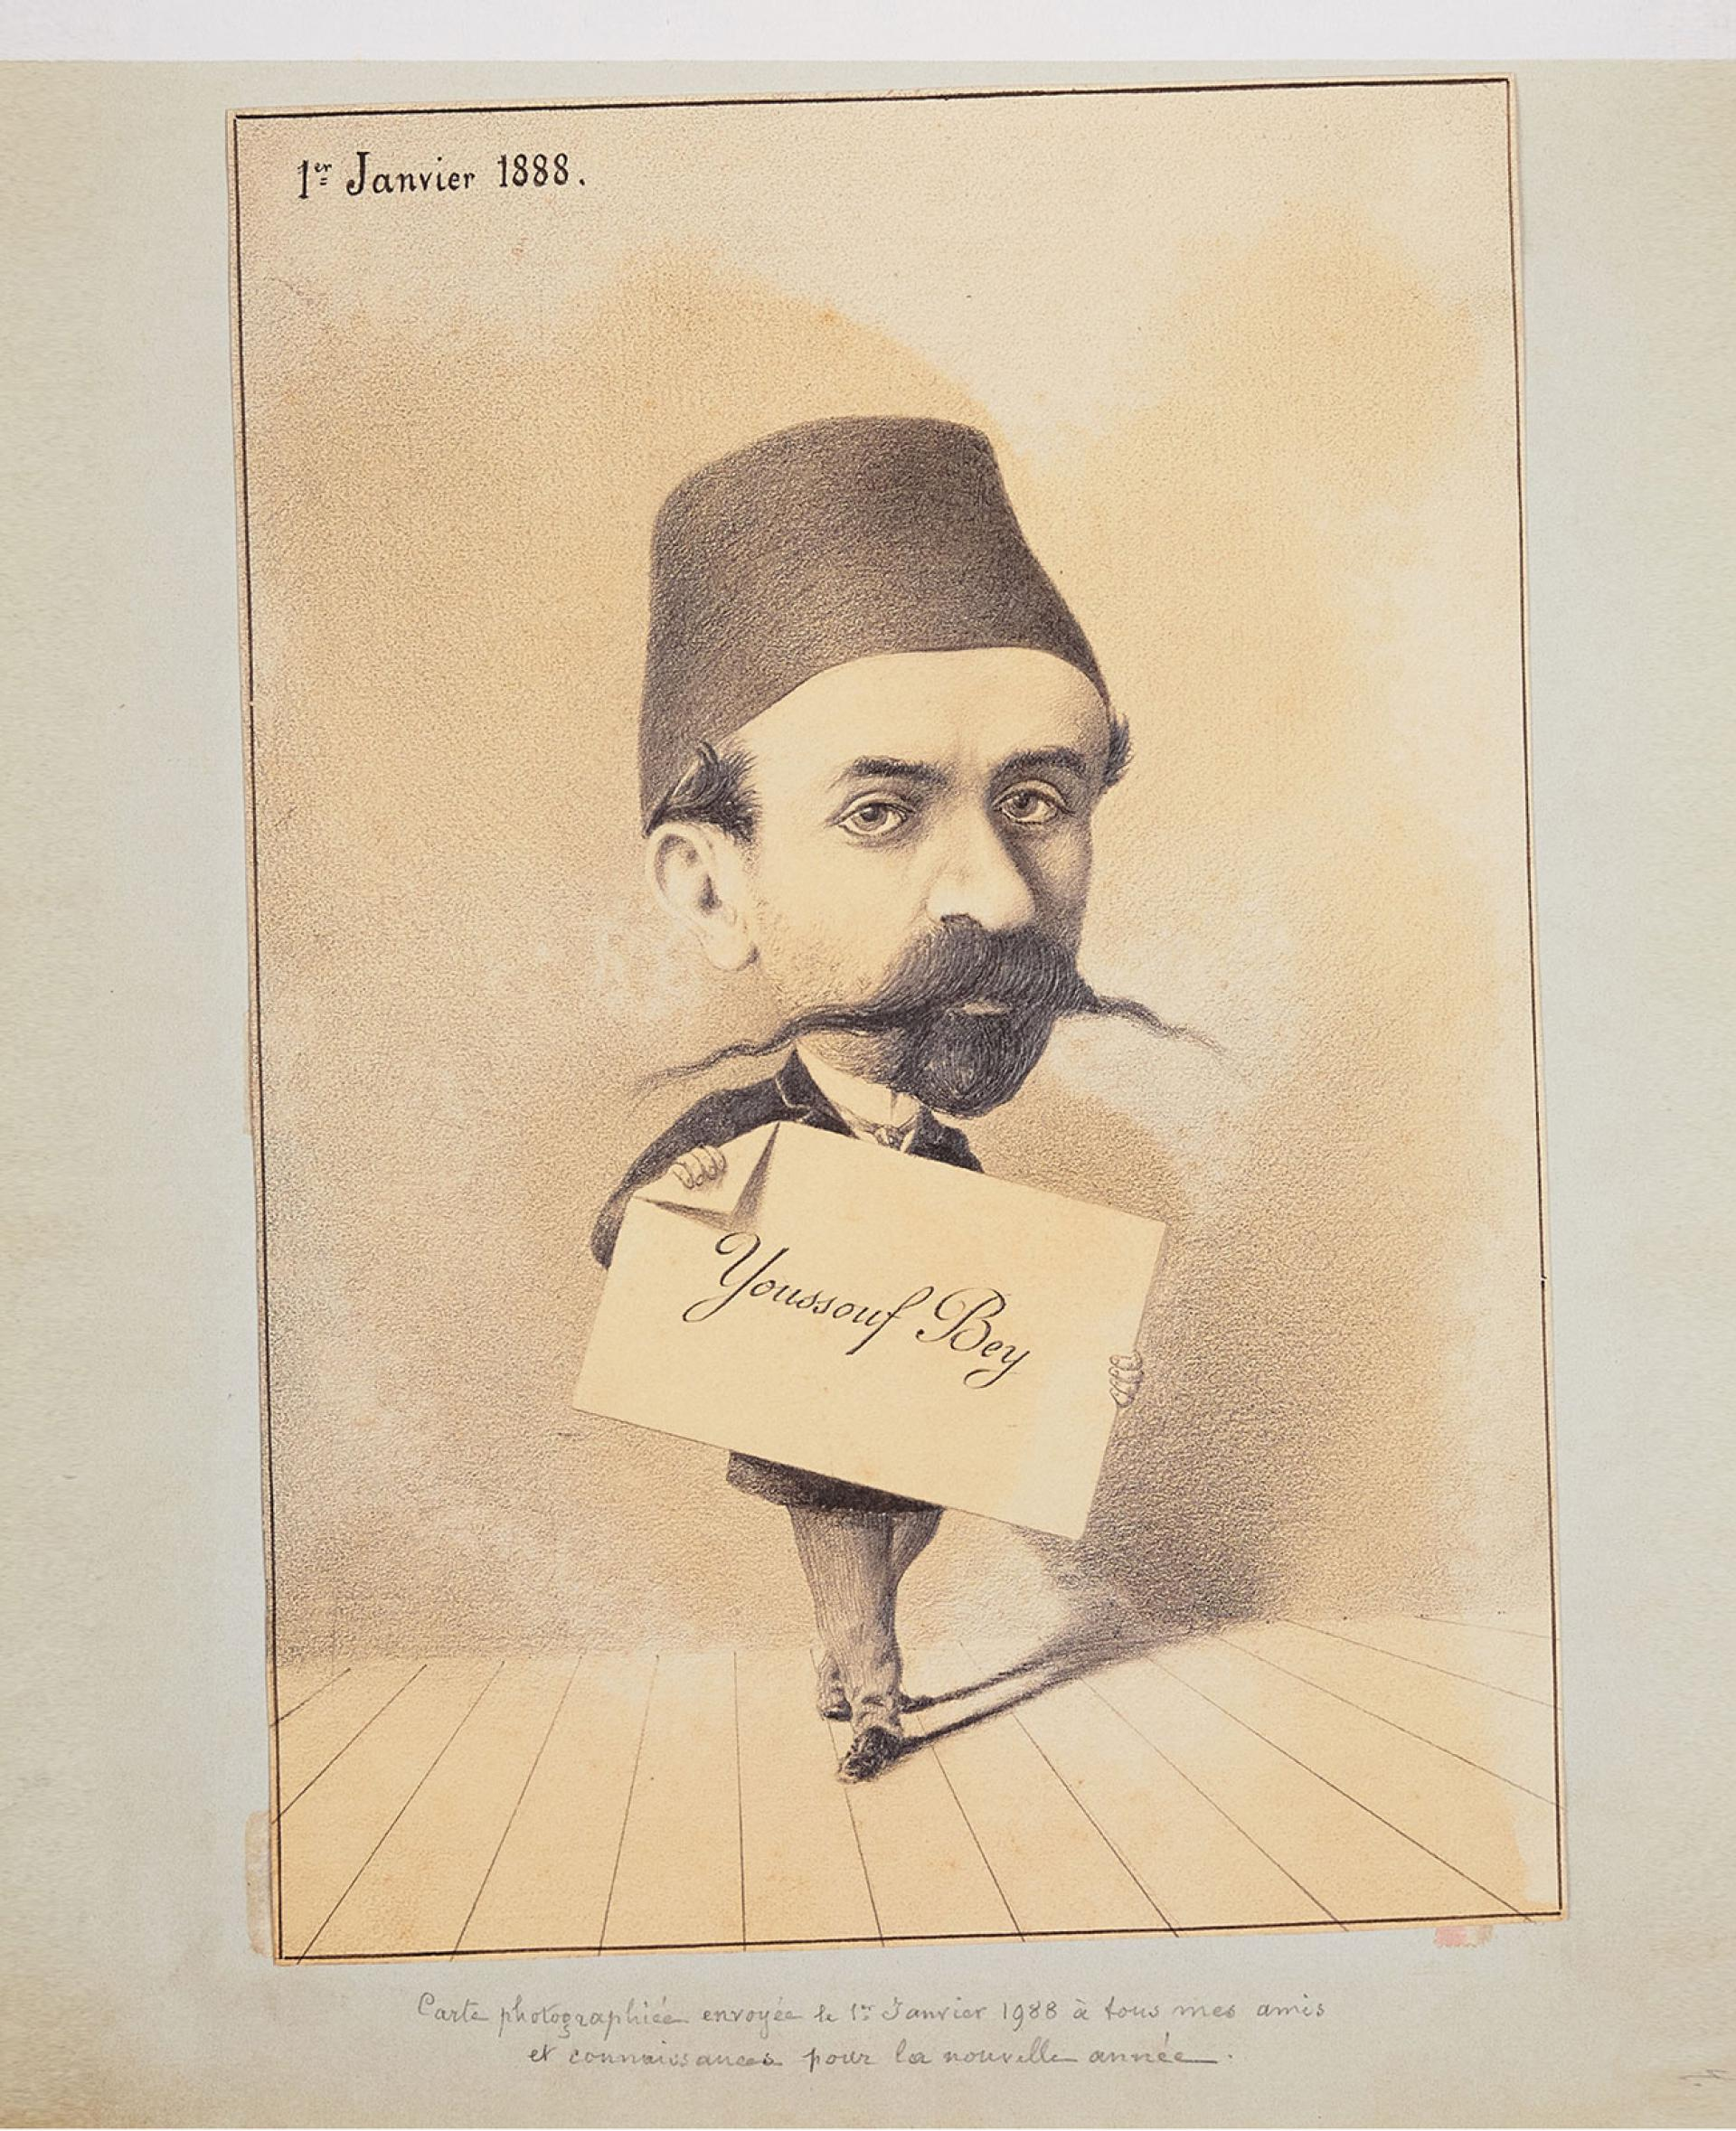 Youssouf Bey, The Charged Portraits Of Fin-De-Siècle Pera, Ömer M. Koç Collection - KİTAPLAR - Sadberk Hanım Müzesi